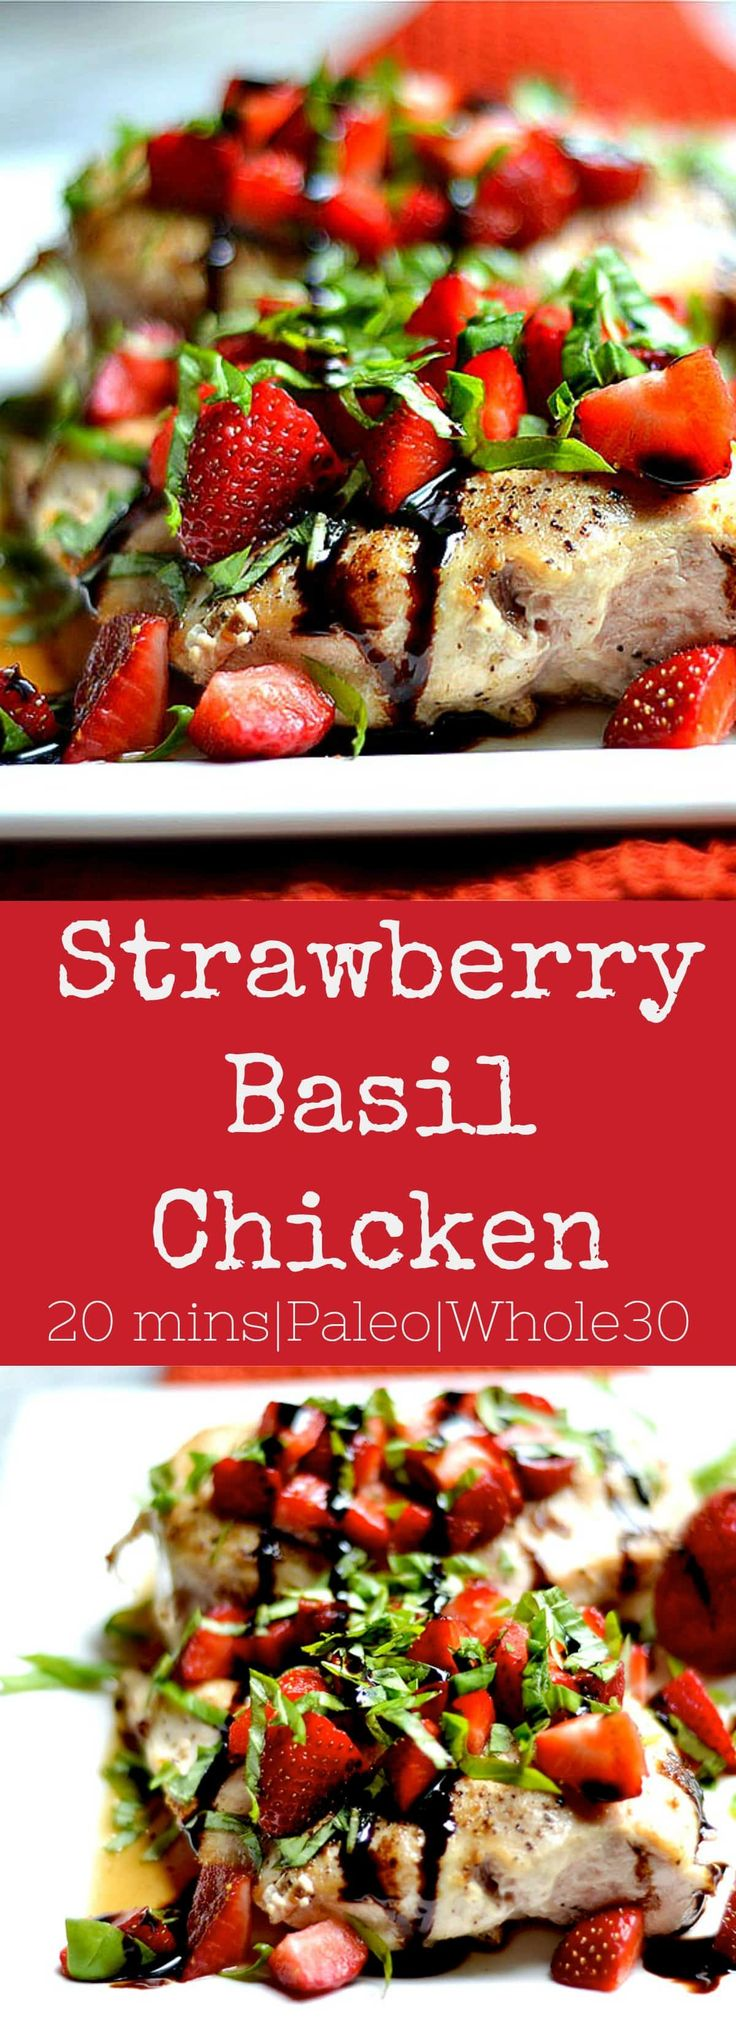 Strawberry Basil Chicken is a simple weeknight dish bursting with tangy basil balsamic flavor! The entire dish comes together in less than 20 minutes, and one that is sure to please even the pickiest of eaters. [Standing on soapbox] Can we just take a moment here to recognize the sun that has finally decided to...Read More »